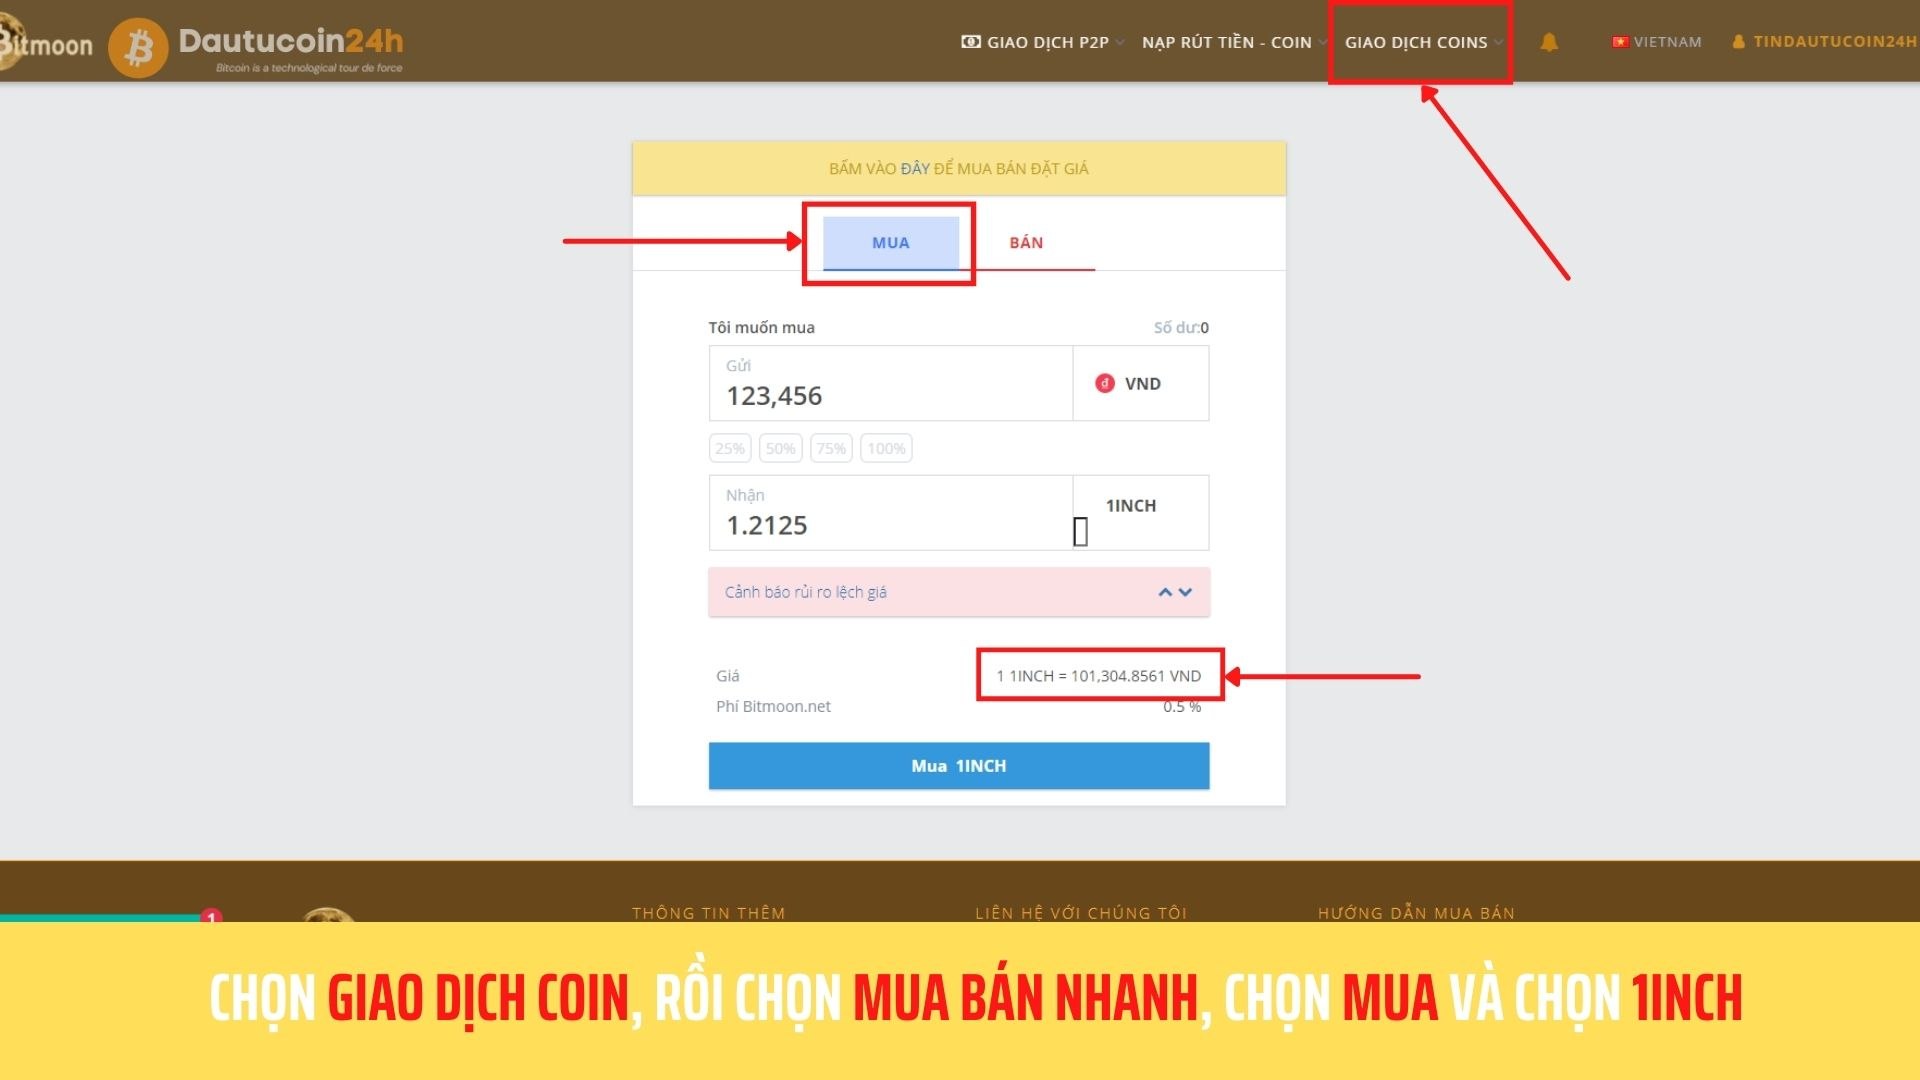 Giao dịch Coin nhanh